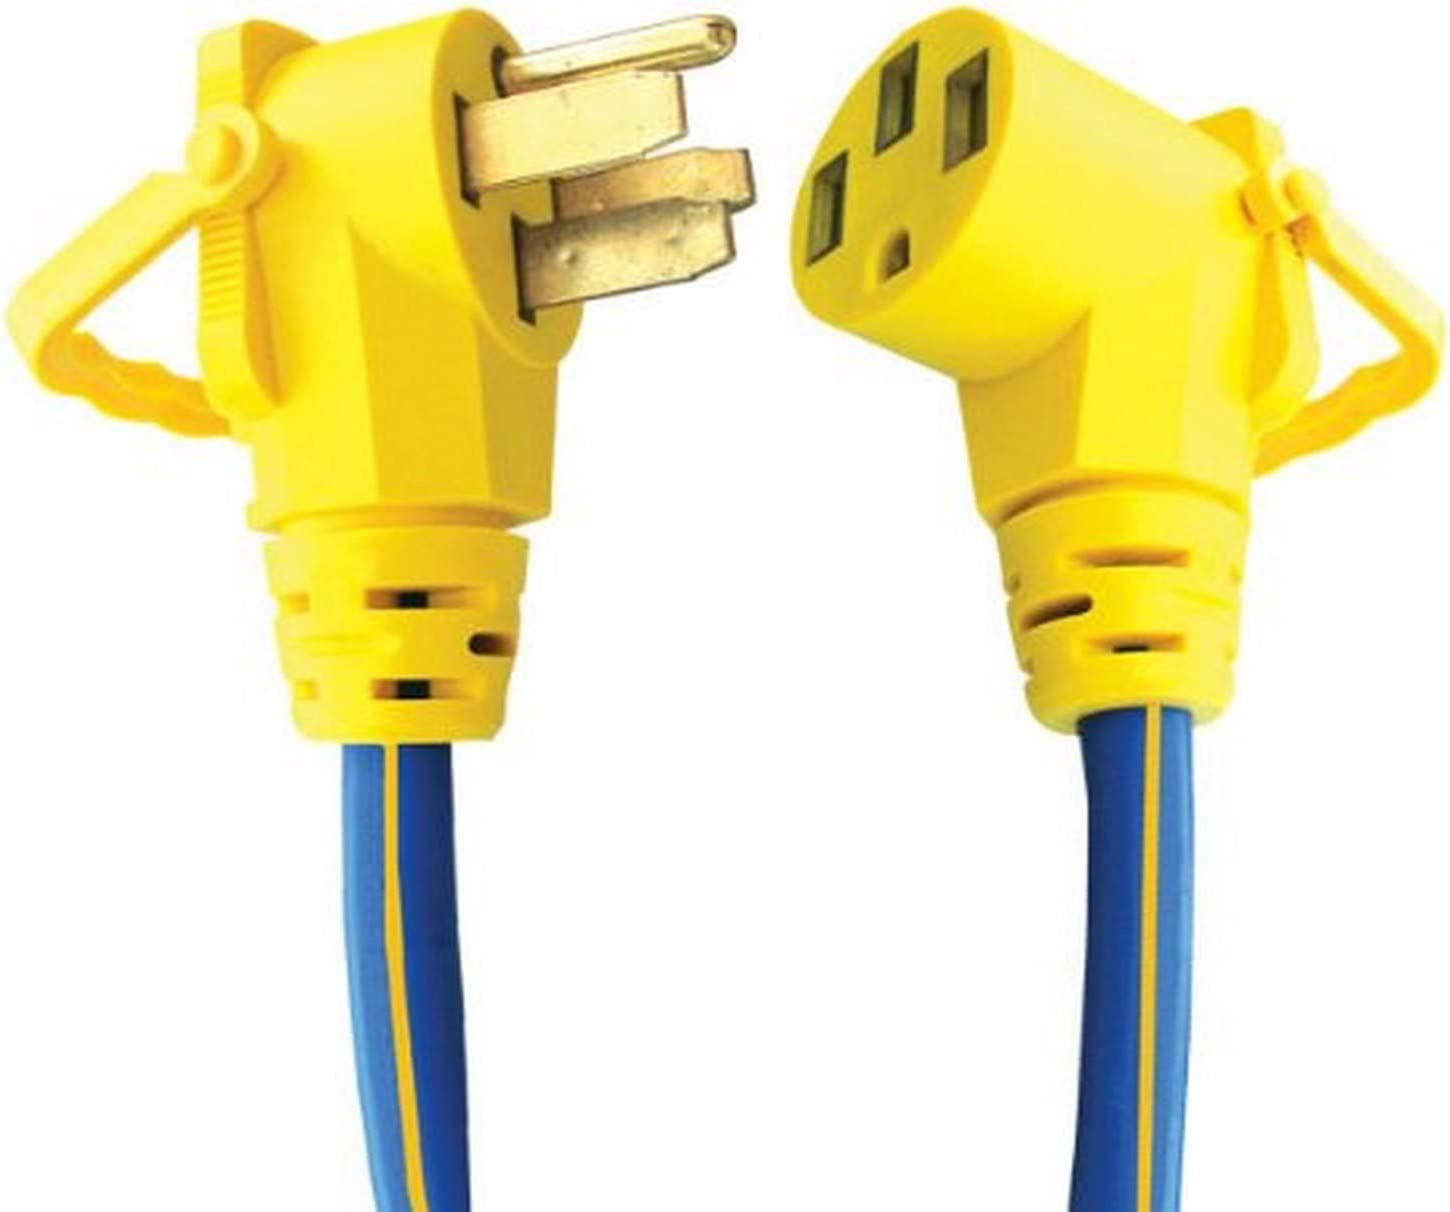 Voltec 16-00510 50A Extension Super intense SALE Cord E-Zee 15' - Grip with Popular shop is the lowest price challenge